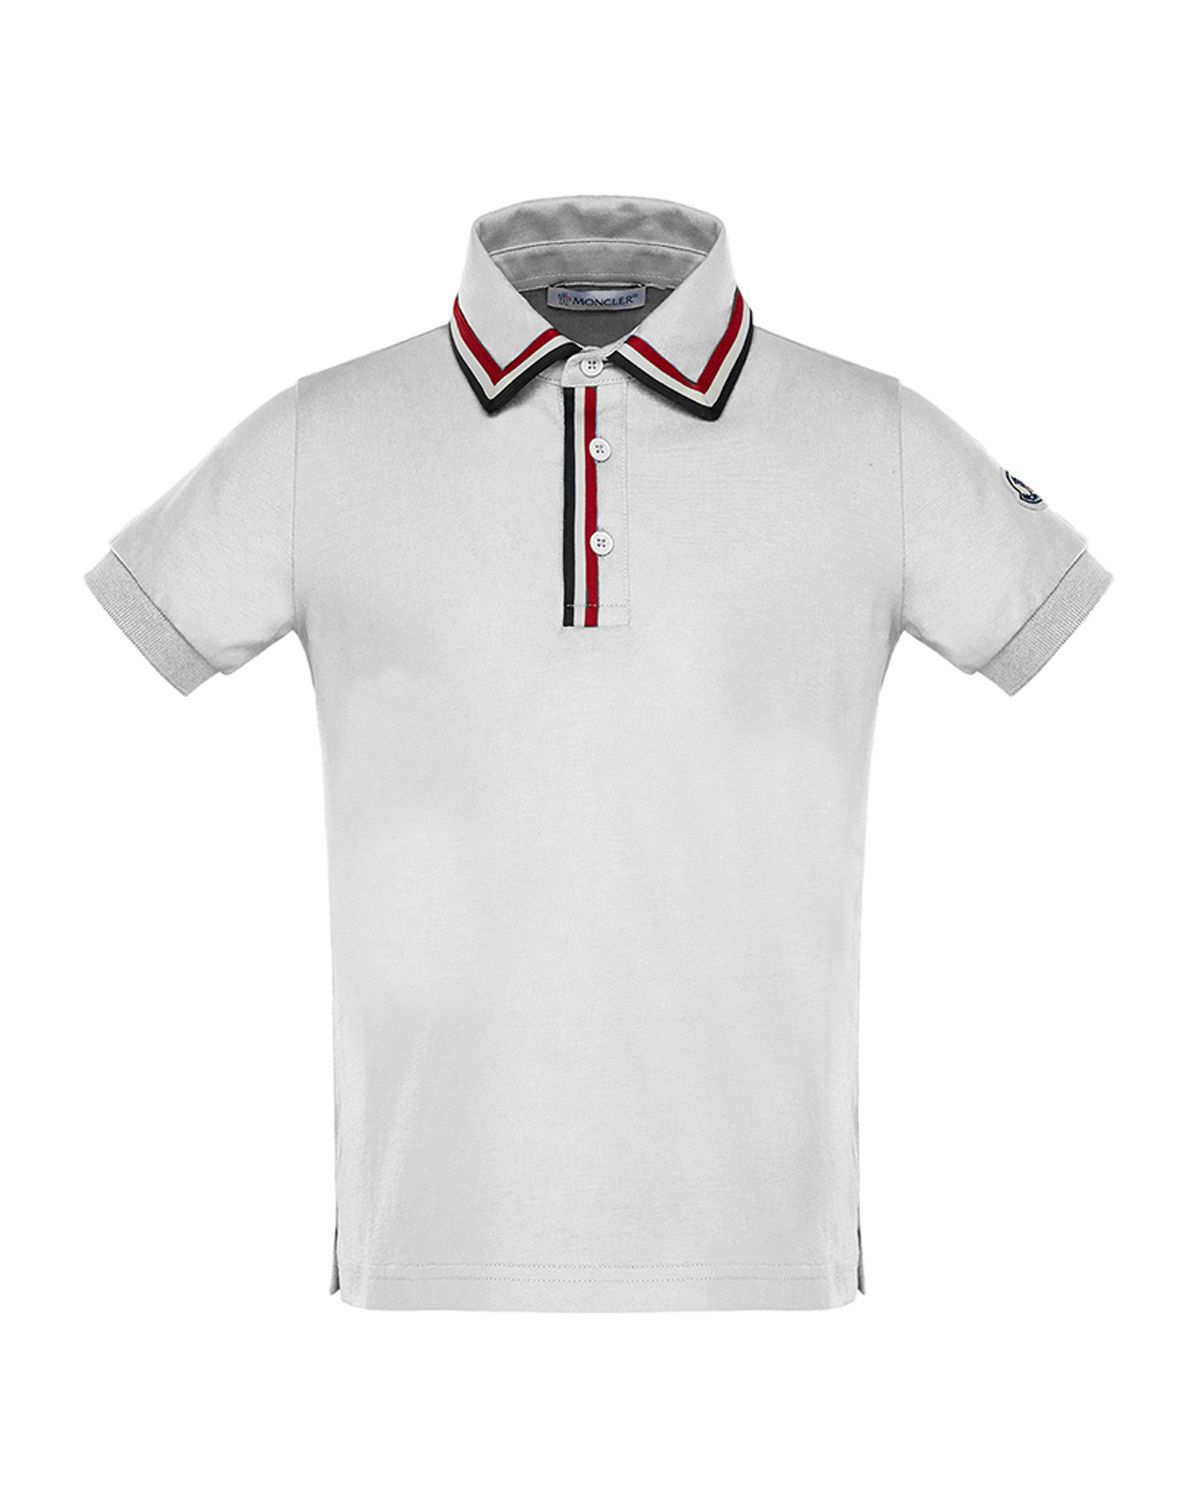 Jersey Polo Moncler Cheap Get To Buy Ebay Sale Online Free Shipping Best Place Explore For Sale For Nice For Sale HMAHp6VUwE